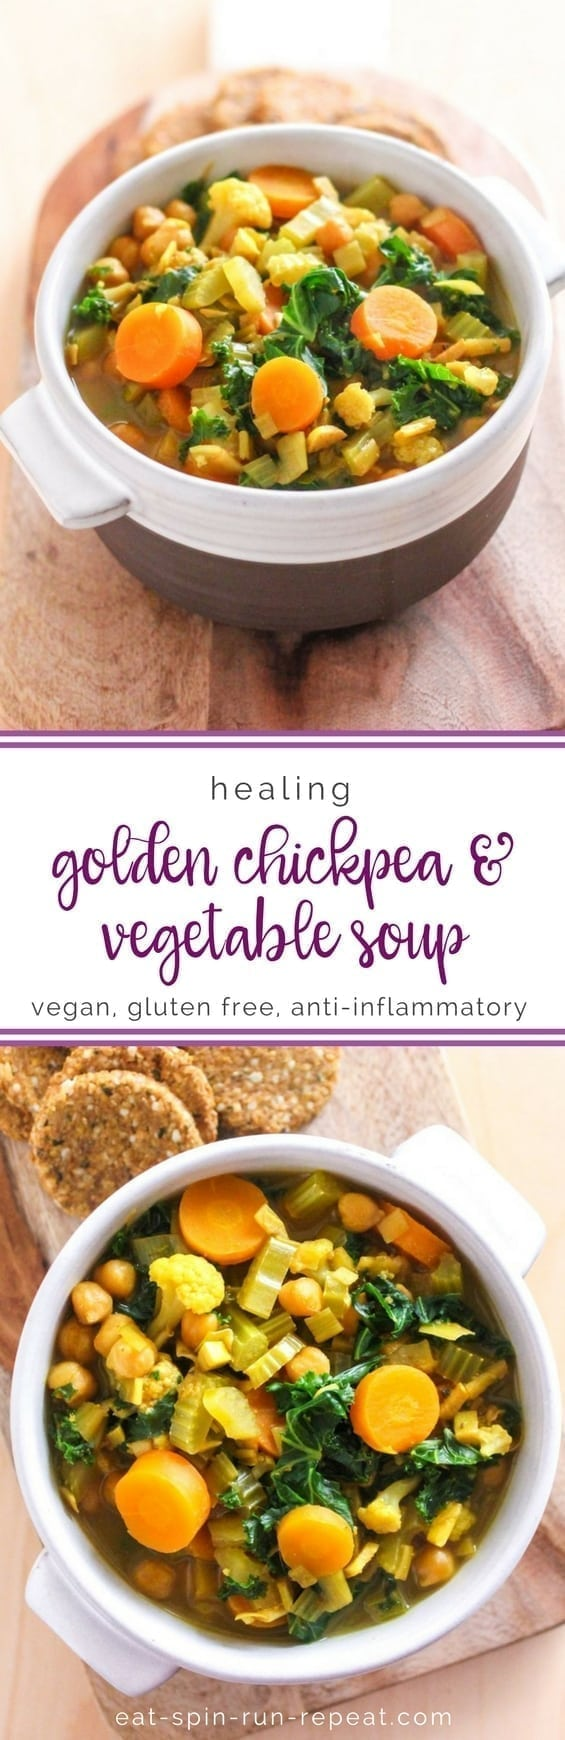 Healing Golden Chickpea and Vegetable Soup - Eat Spin Run Repeat